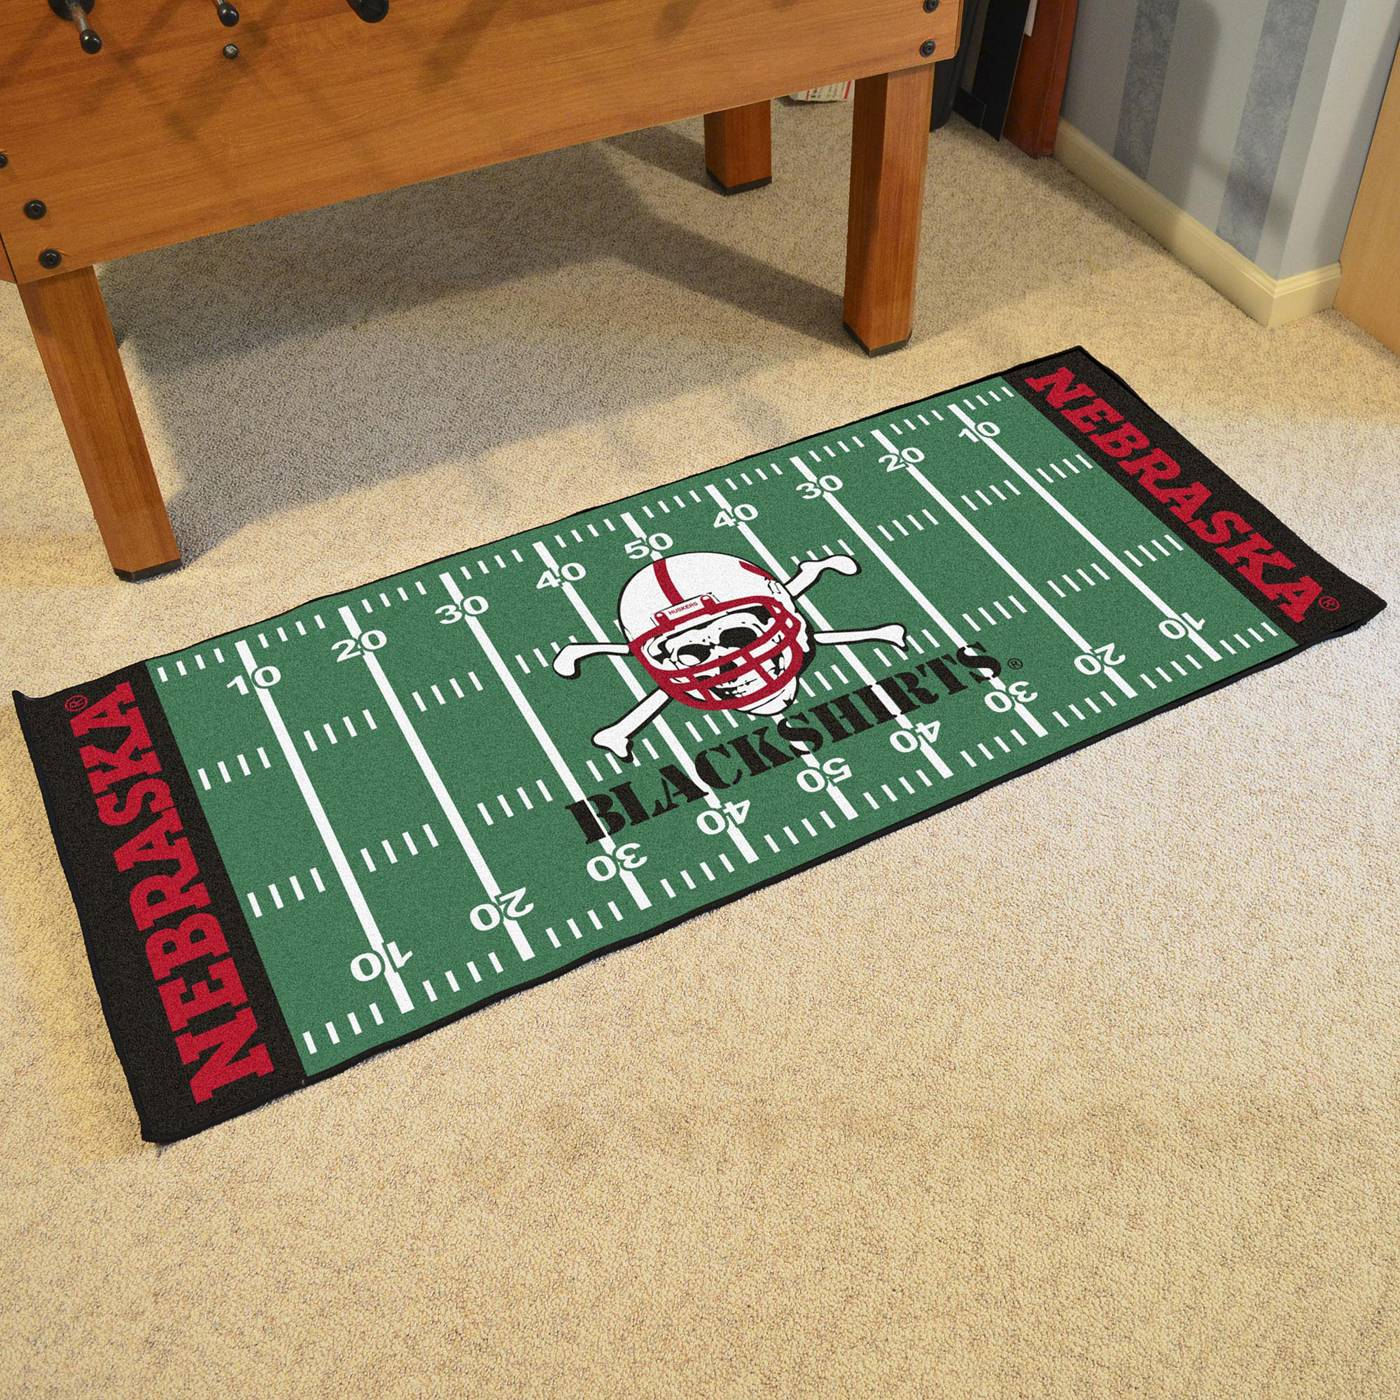 Nebraska Cornhuskers Blackshirts Football Field Runner Rug: Nebraska Cornhuskers Blackshirts Football Field Runner Rug